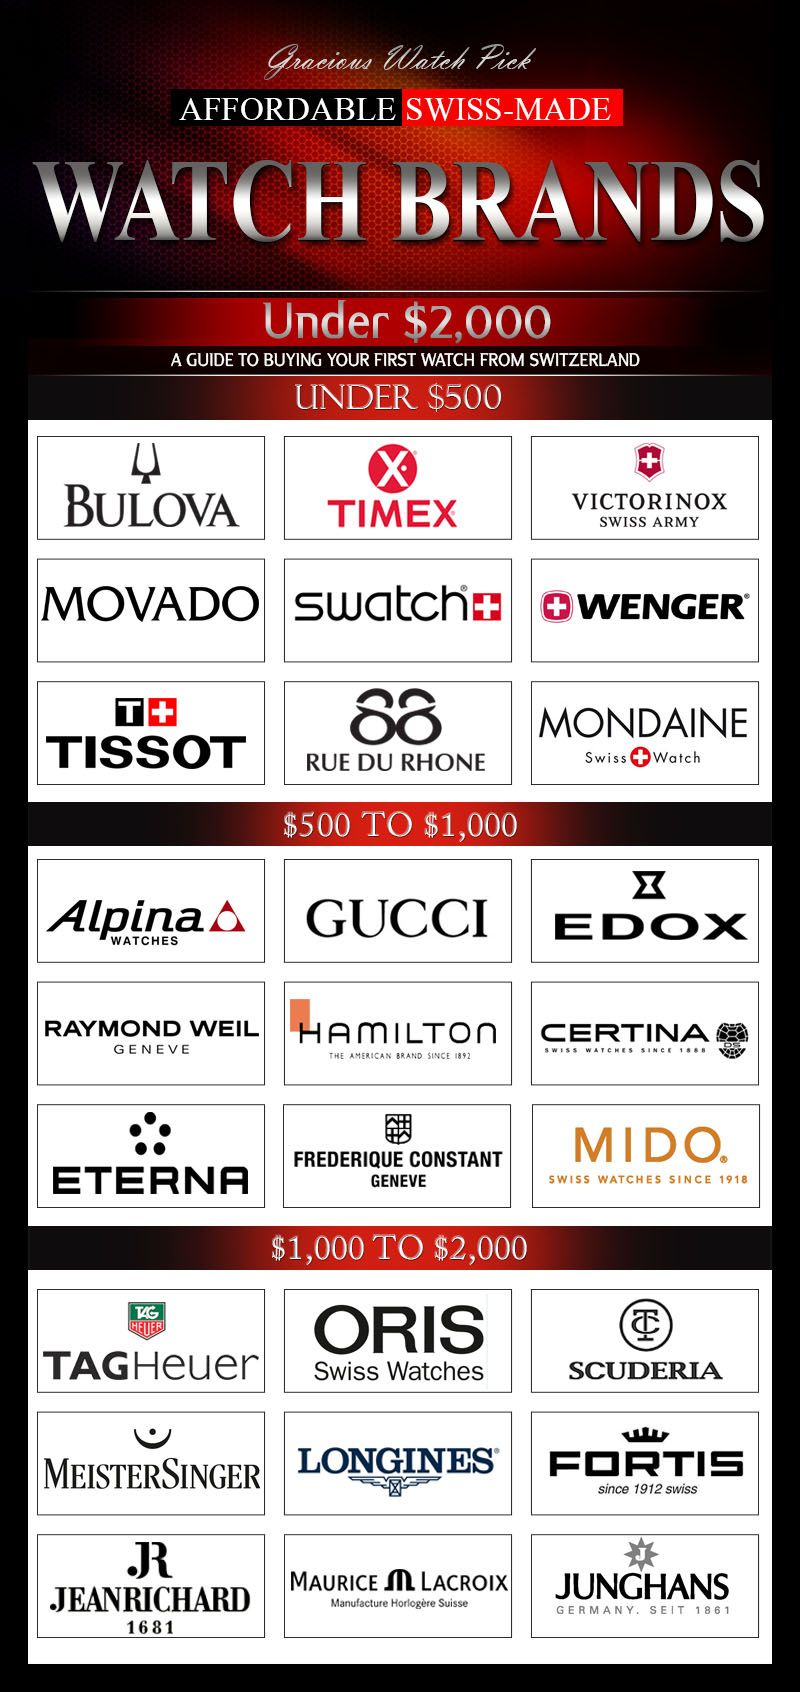 98628afba2646 Affordable Swiss Watch Brands - Gracious Watch Picks (Infographic)